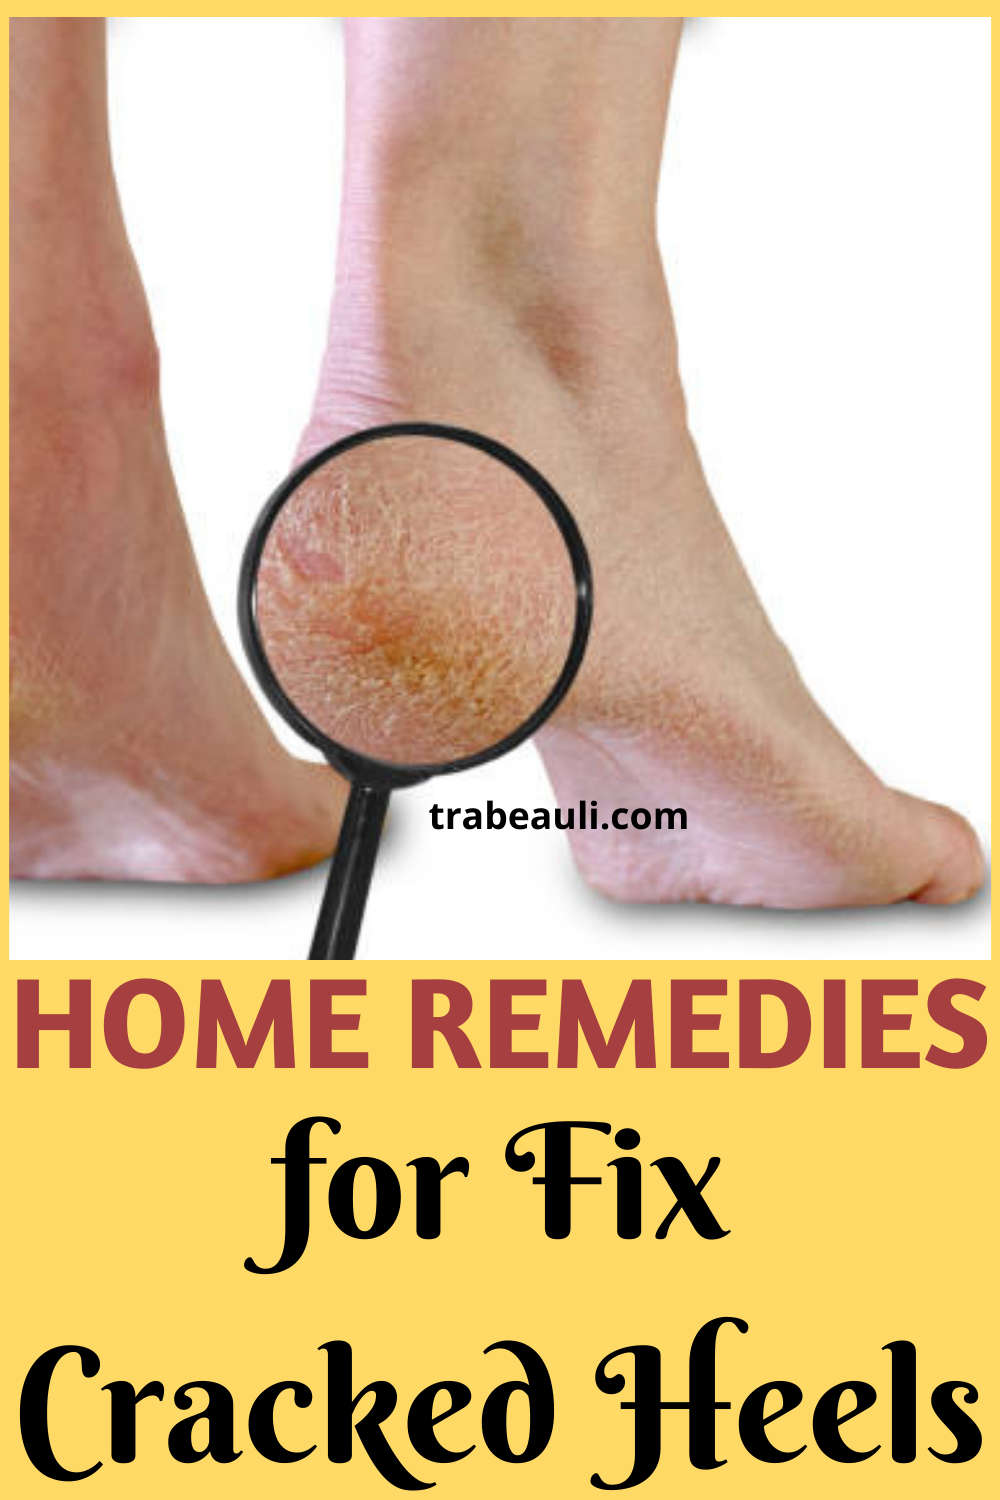 How To Heal Cracked Feet Overnight Home Remedies Trabeauli Dry Feet Remedies Soft Feet Remedy Foot Remedies